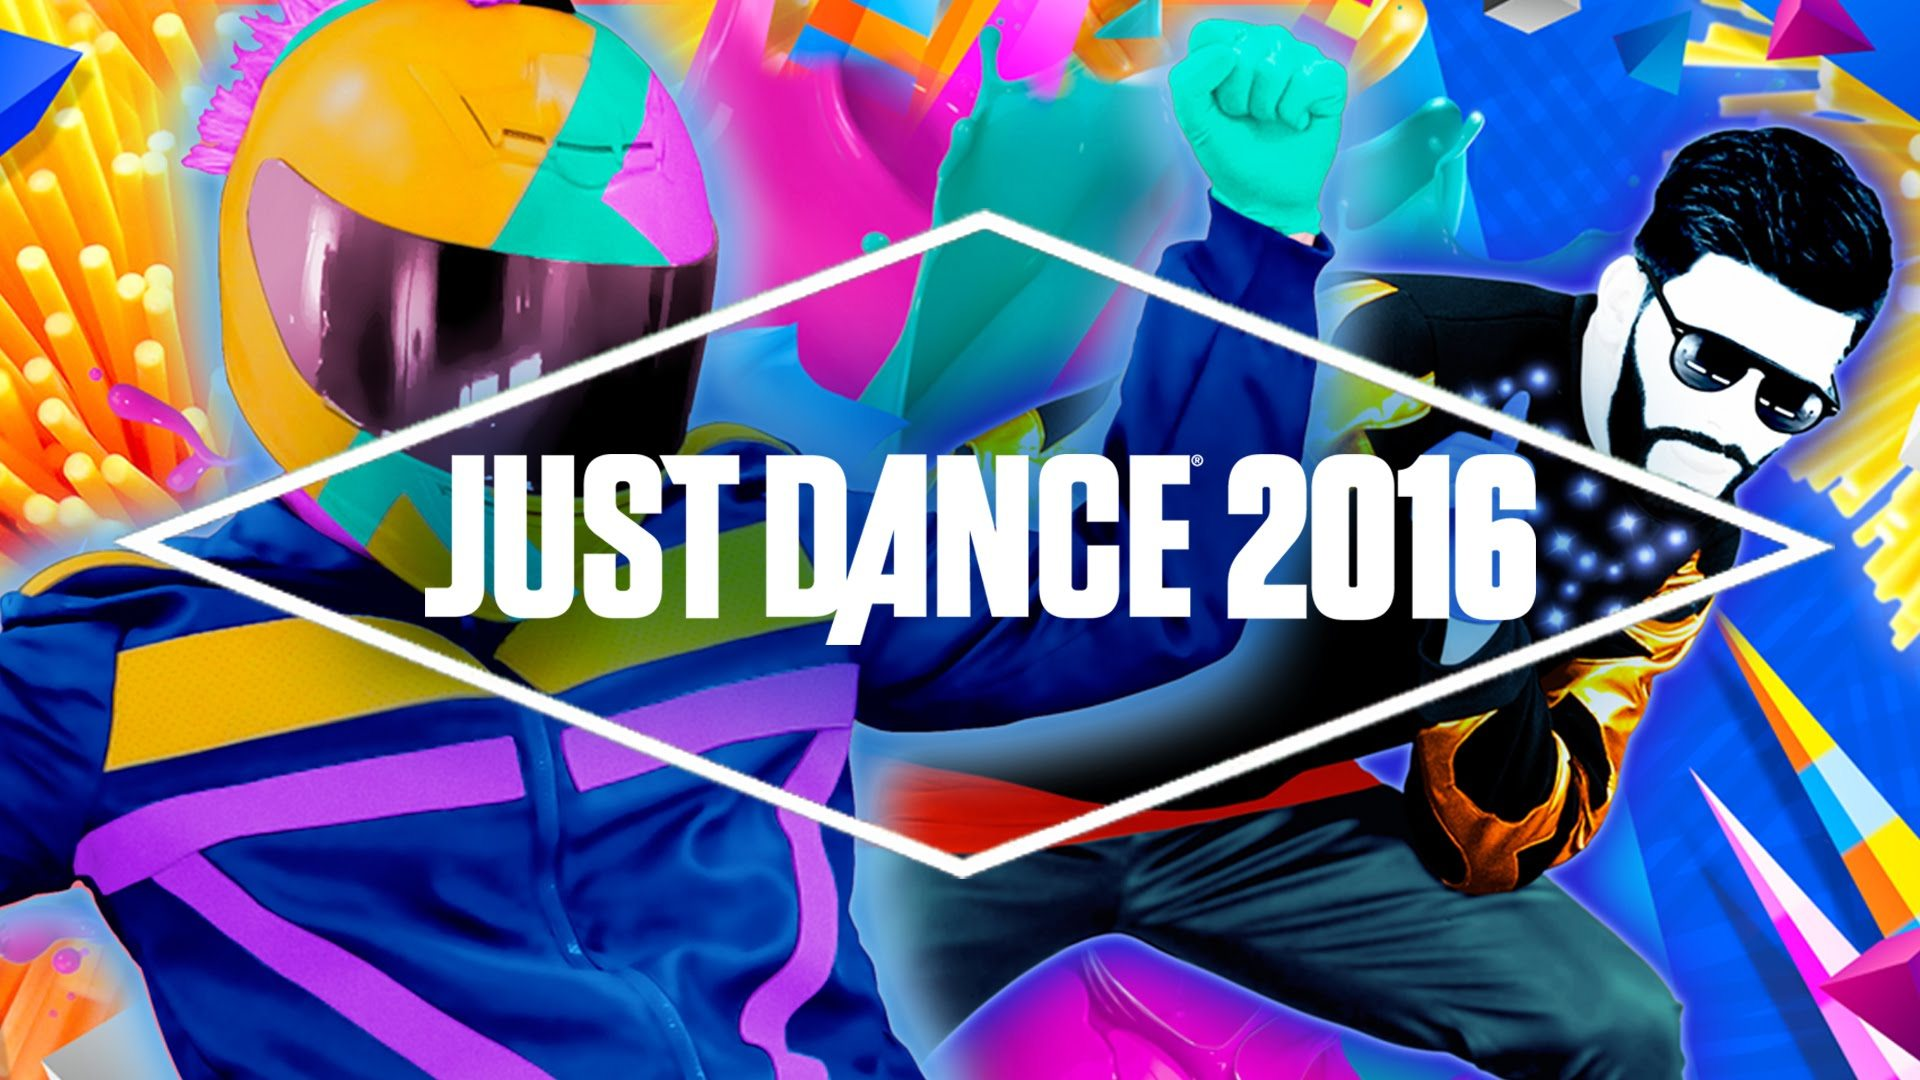 Just Dance 2016 Just Dance Disney Party 2